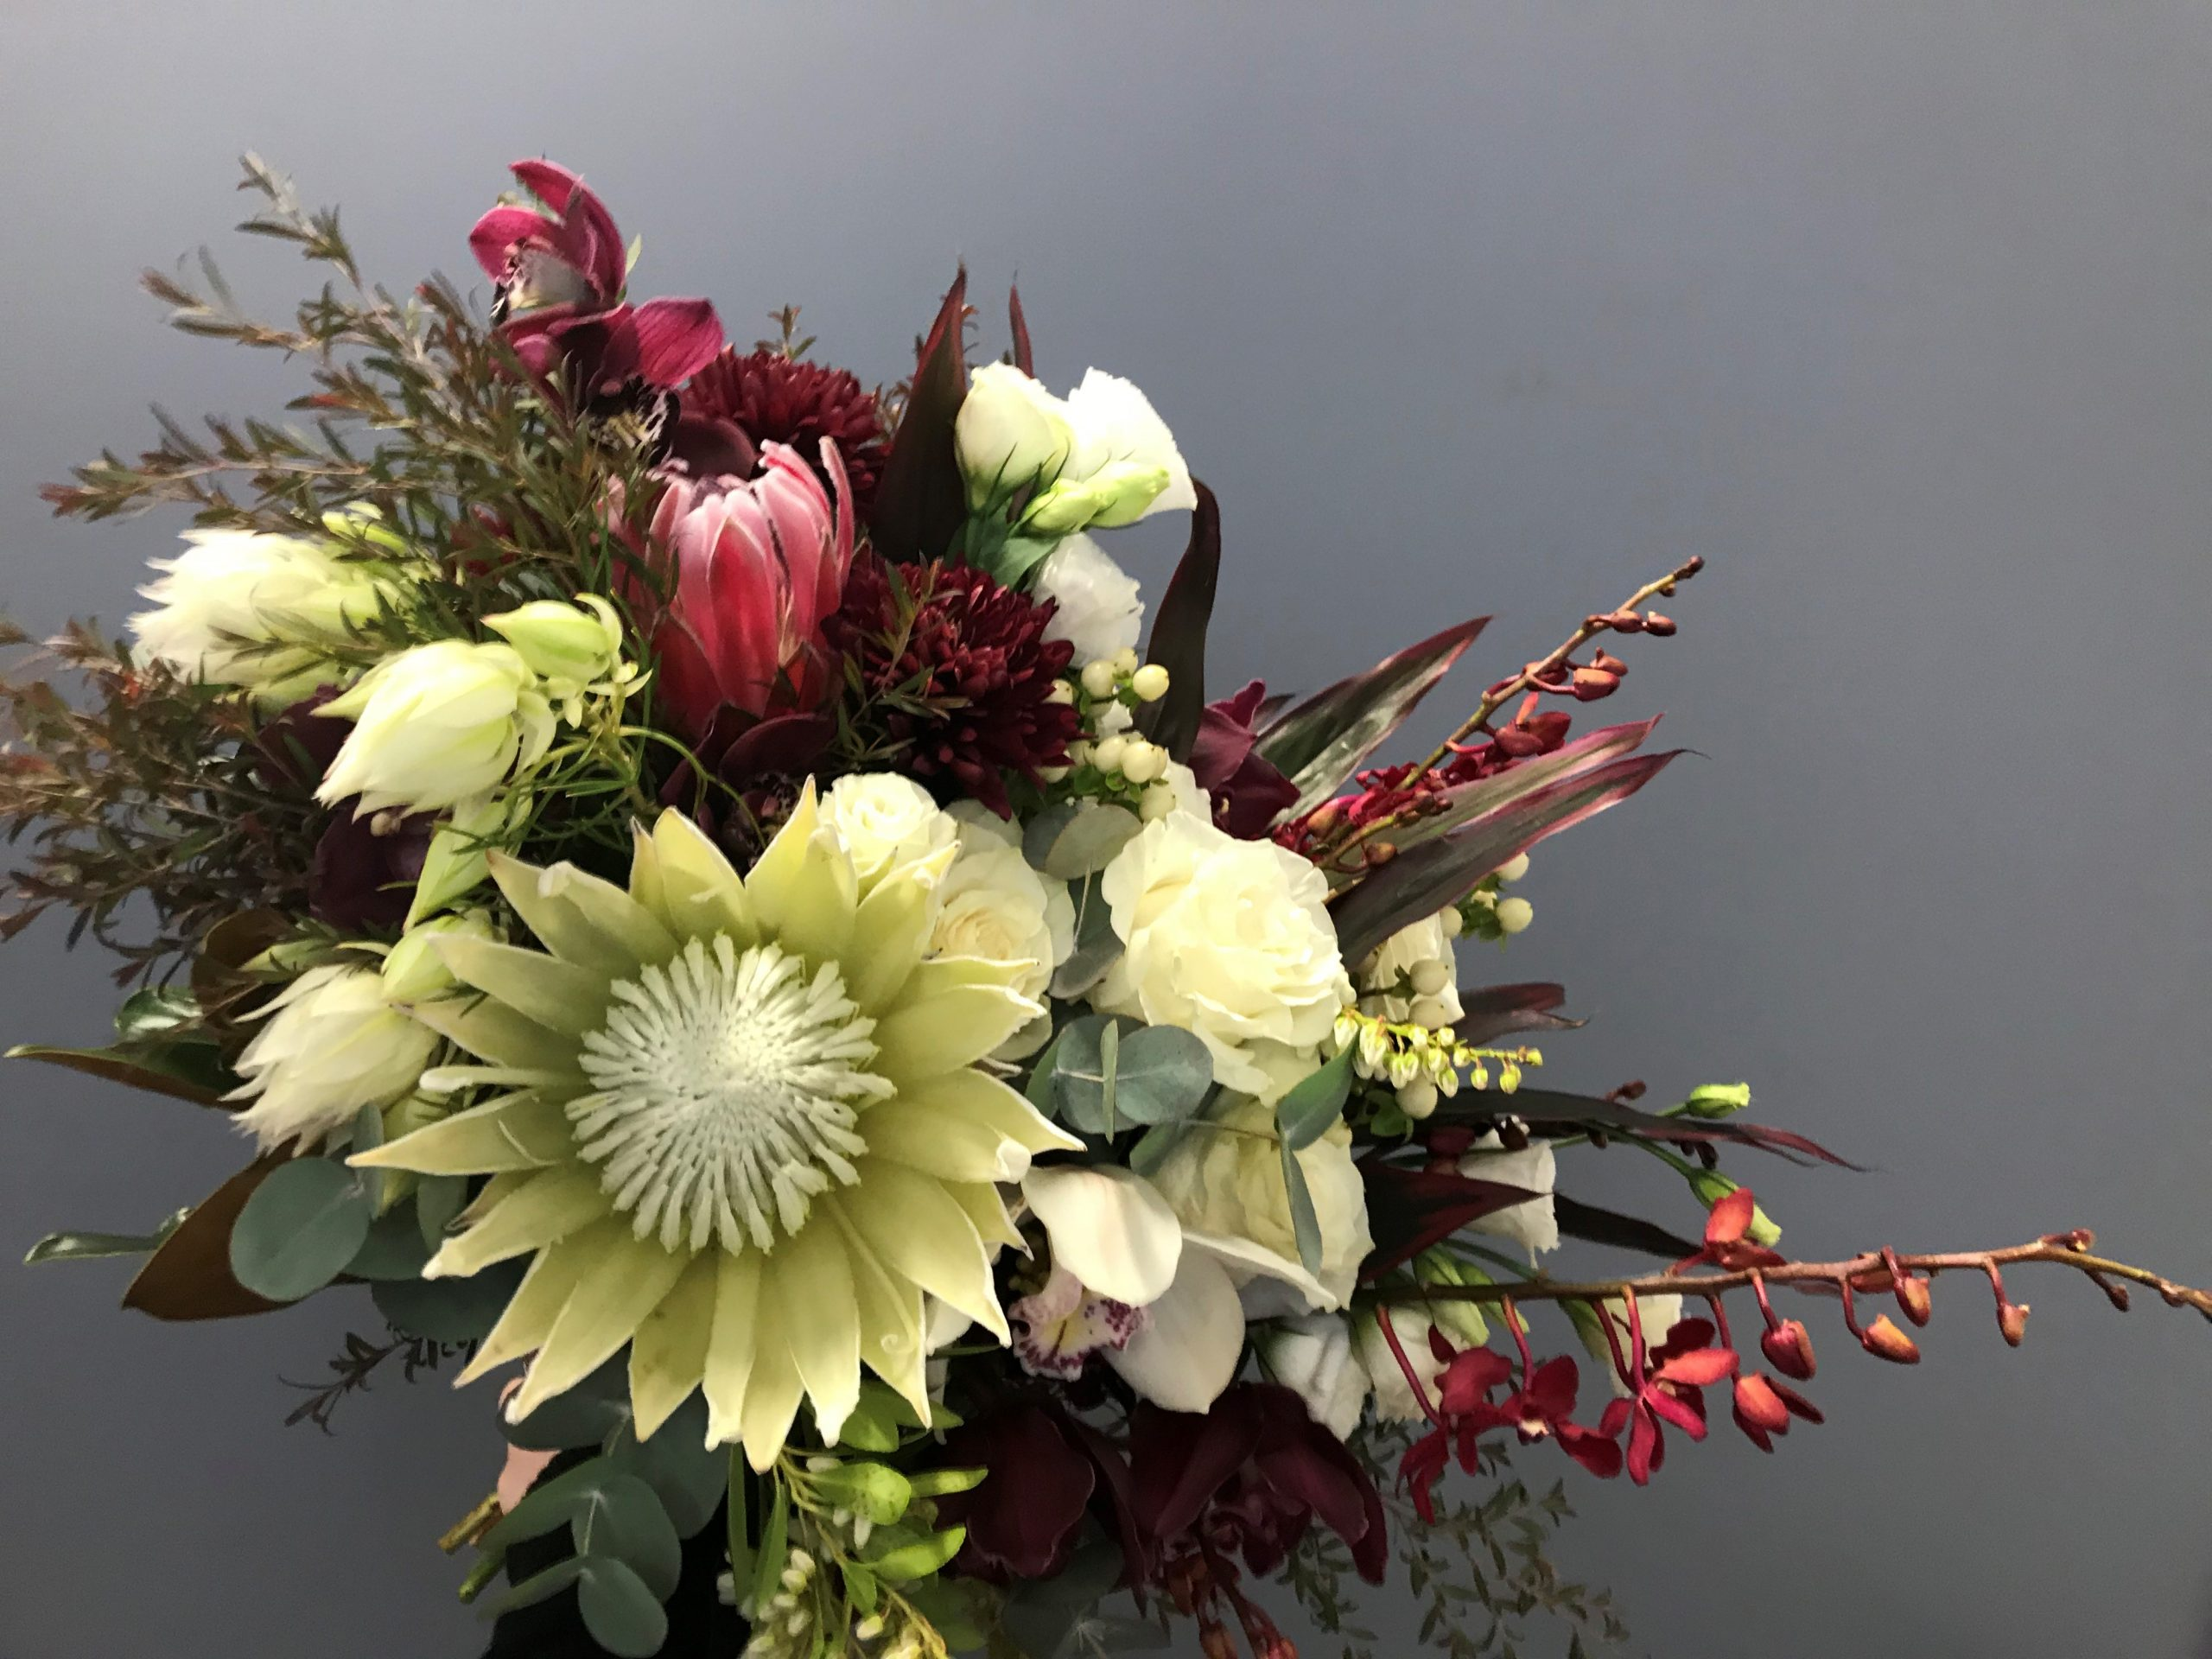 wedding bouquet, tamworth wedding, bridal bouquet, burgundy bouquet, tamworth weddings, tamworth florist, florist tamworth, tamworth wedding florist, boho bouquet, orchid bouquet, Protea bouquet